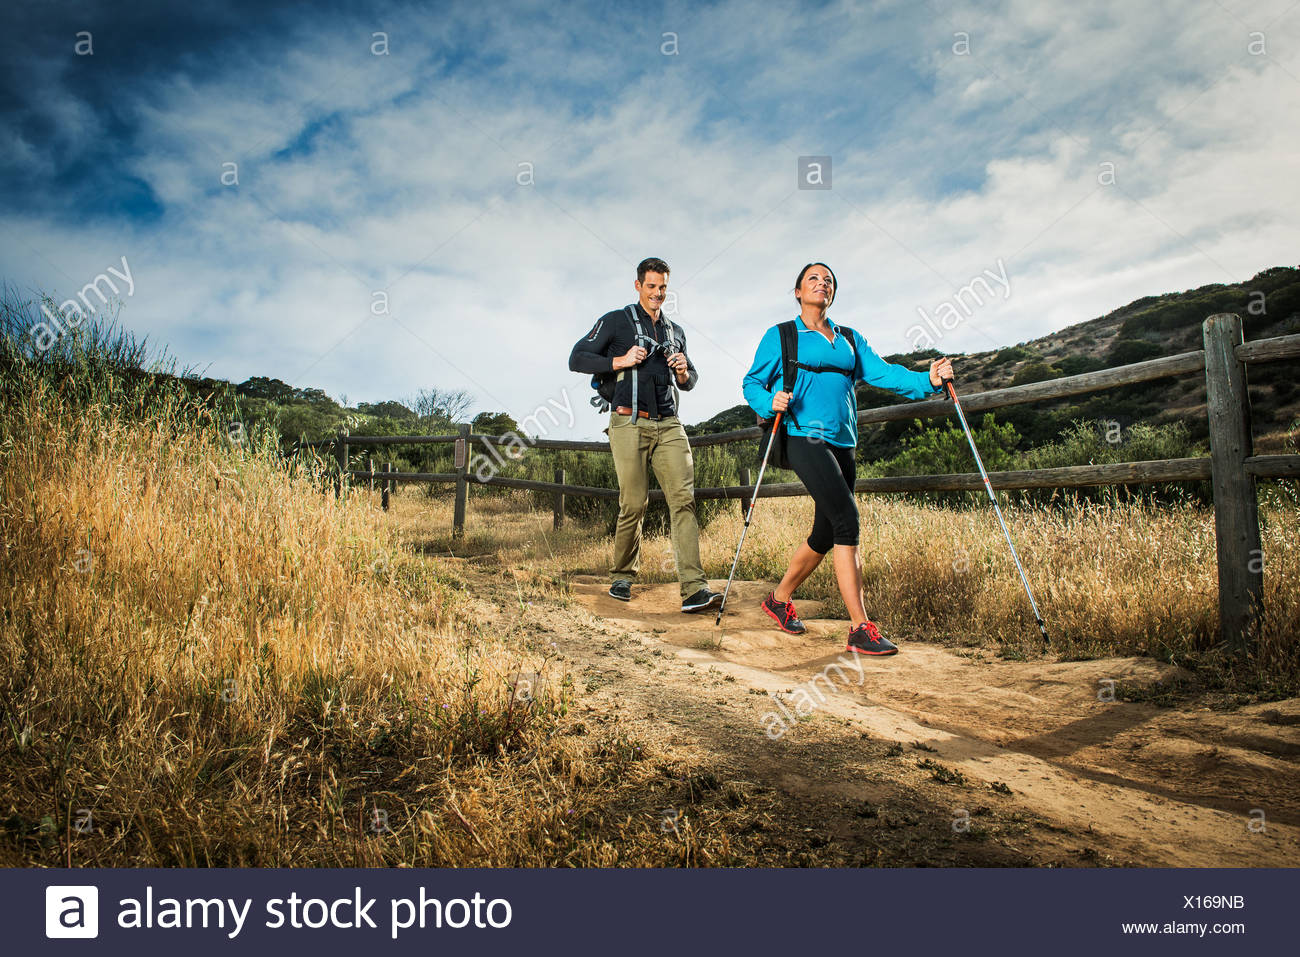 Hikers walking in countryside - Stock Image